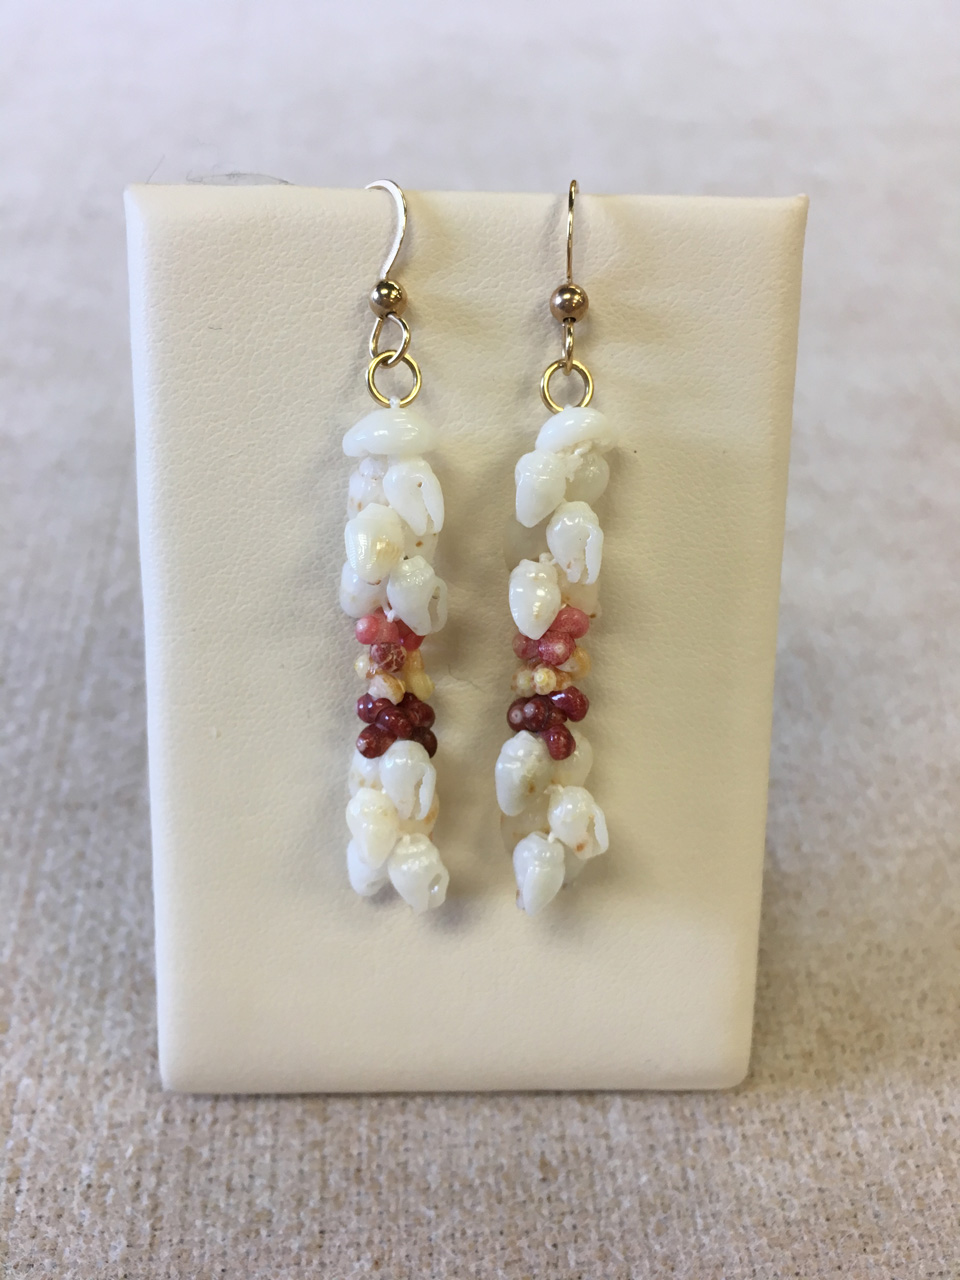 Niihau Niʻihau Kipona Earrings